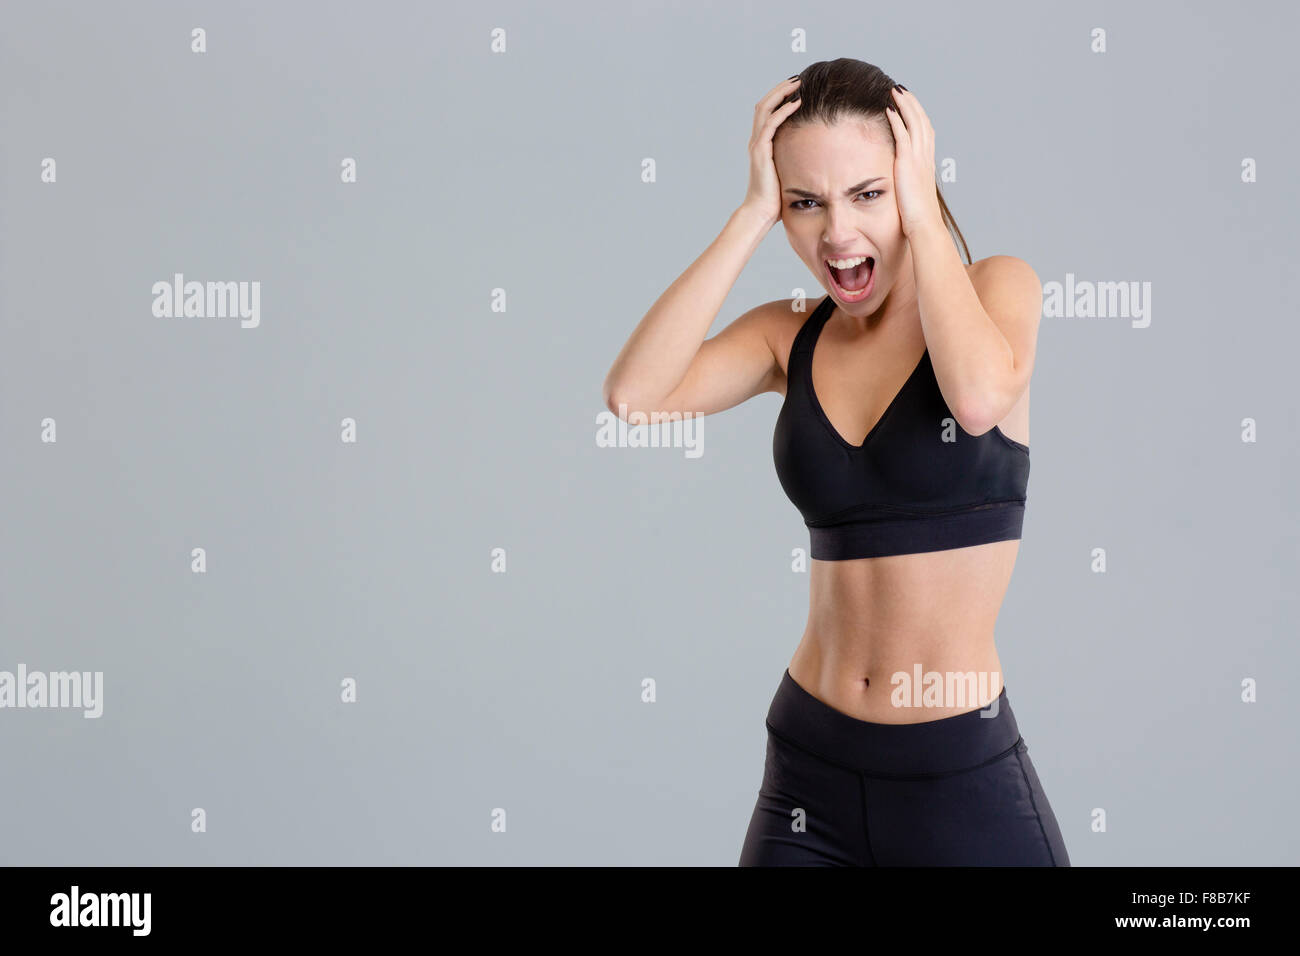 Crazy hysterical shouting fitness girl in black top and leggings isolated over grey background - Stock Image